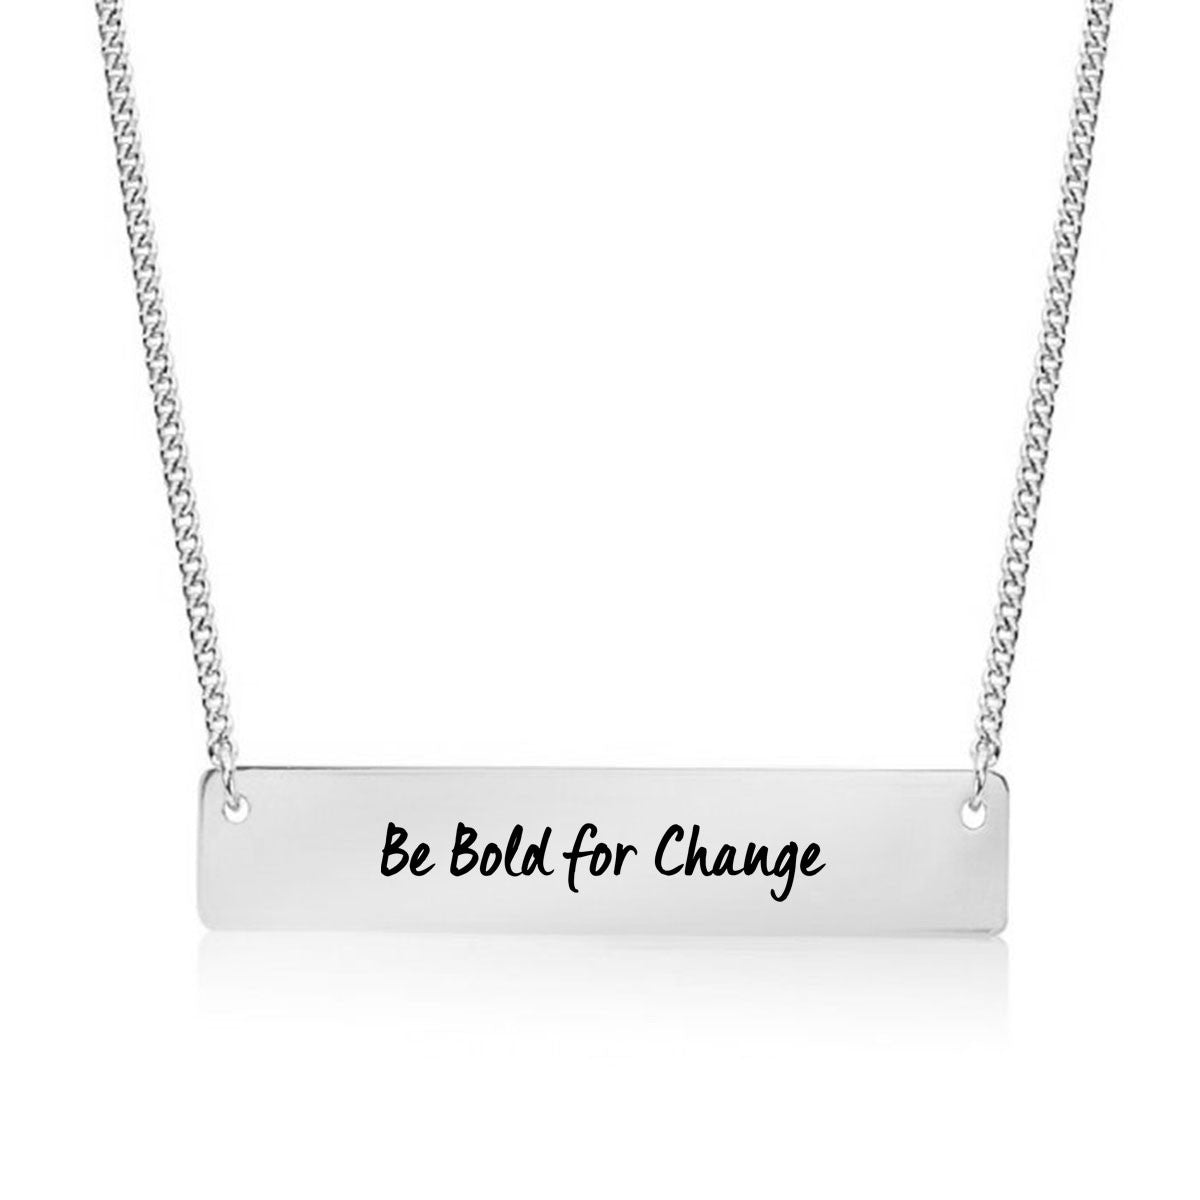 Be Bold for Change Gold / Silver Bar Necklace - pipercleo.com